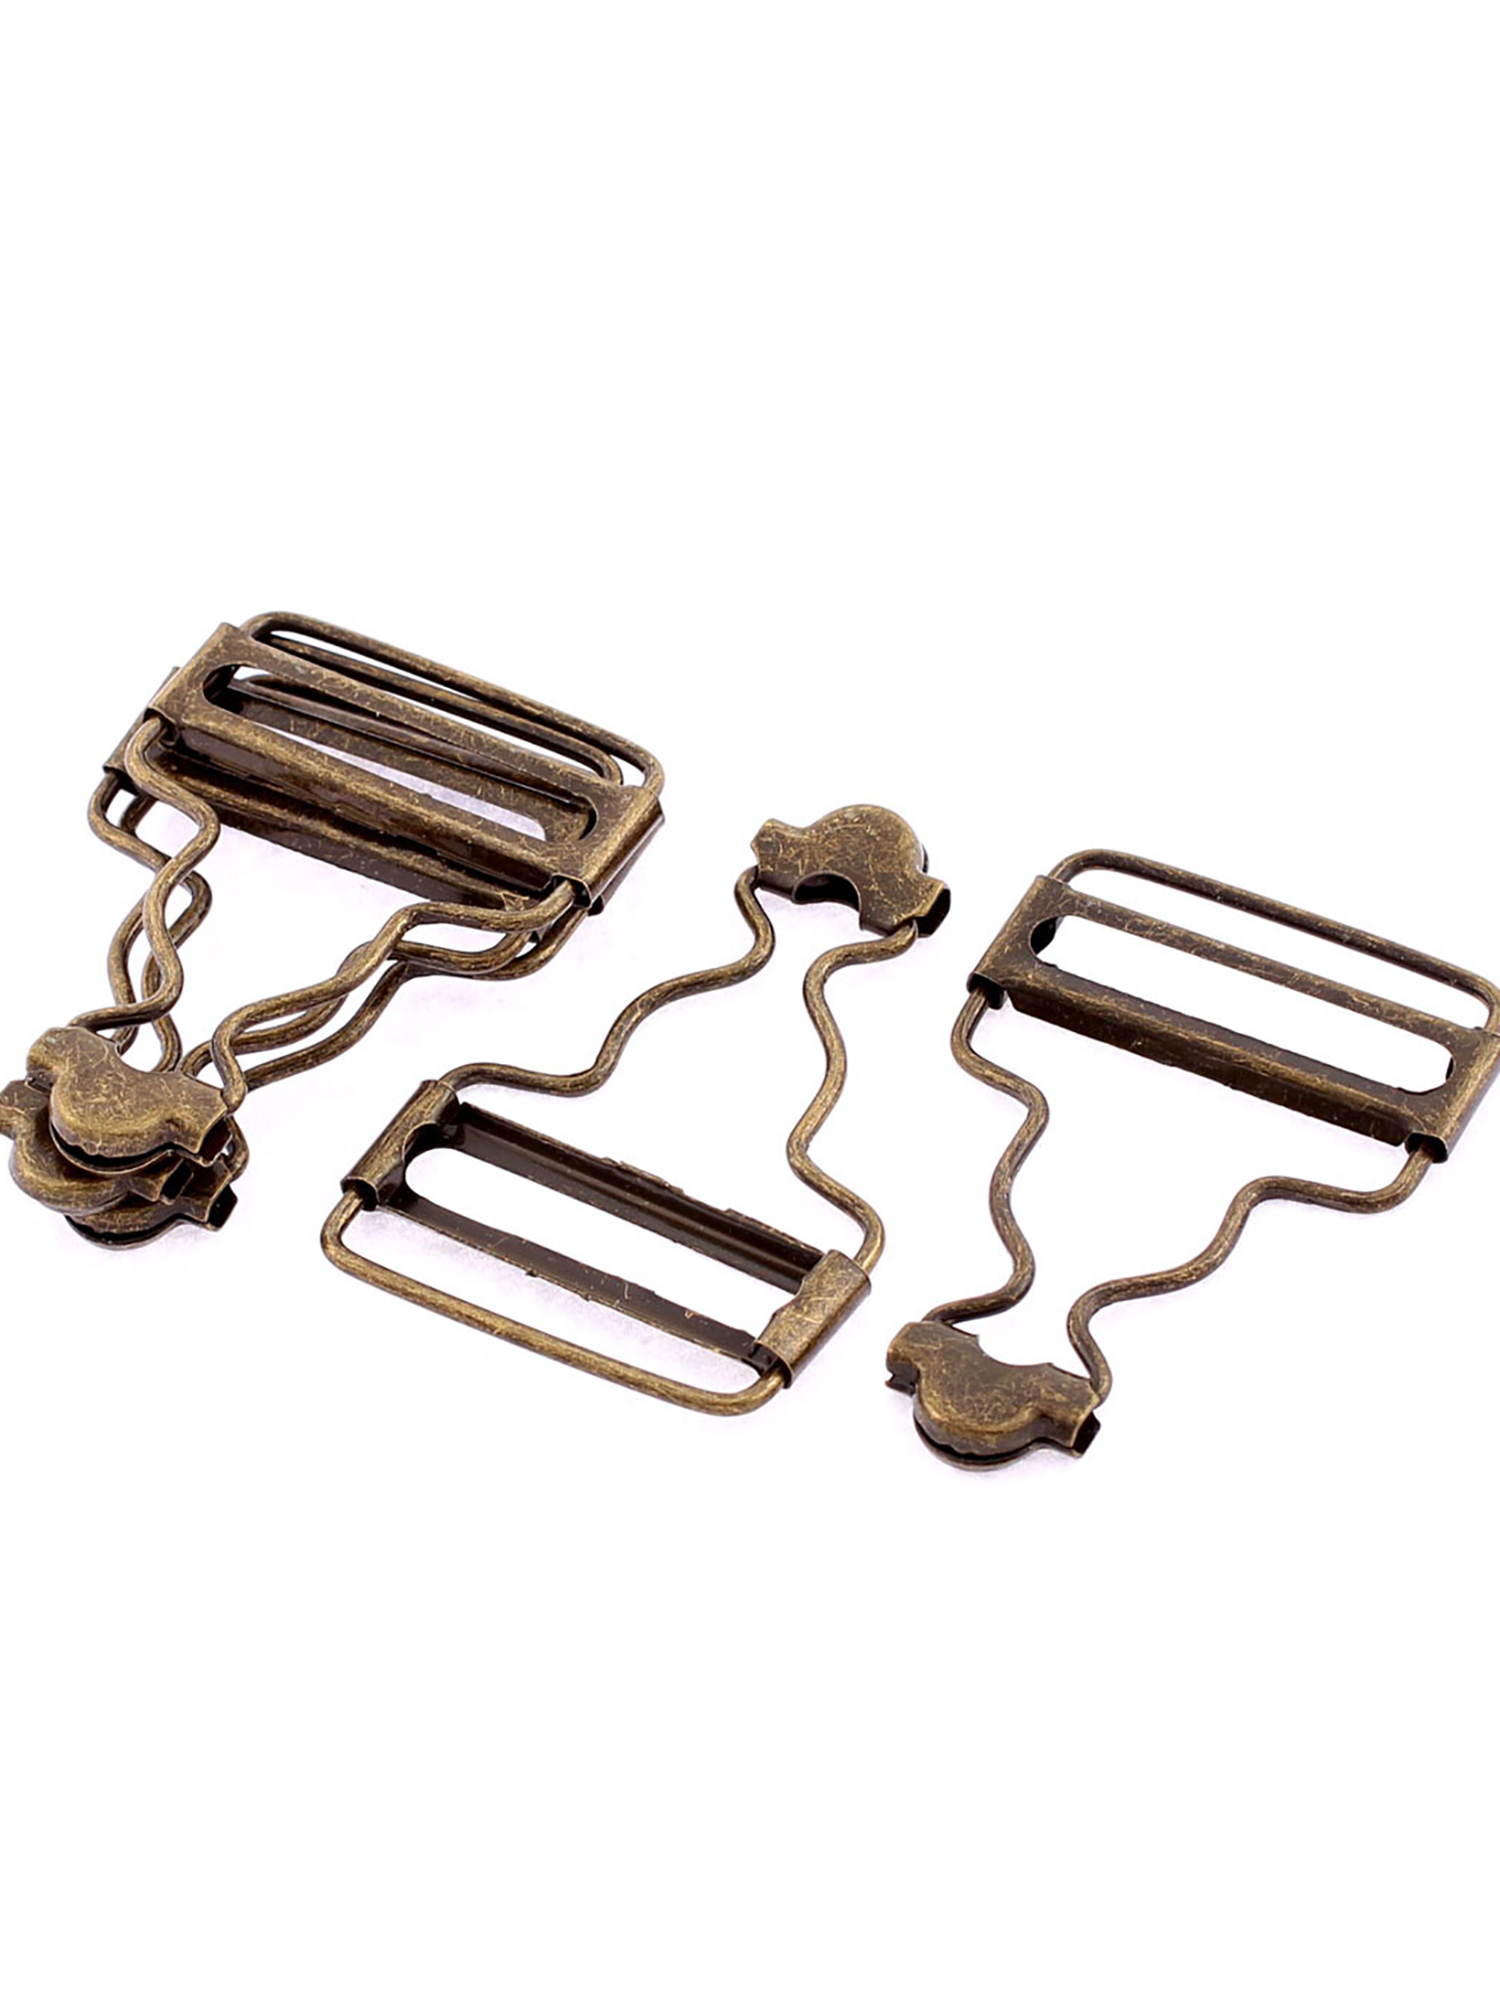 32mm Inside Width Dungaree Fasteners Clip Suspender Buckles 5Pcs